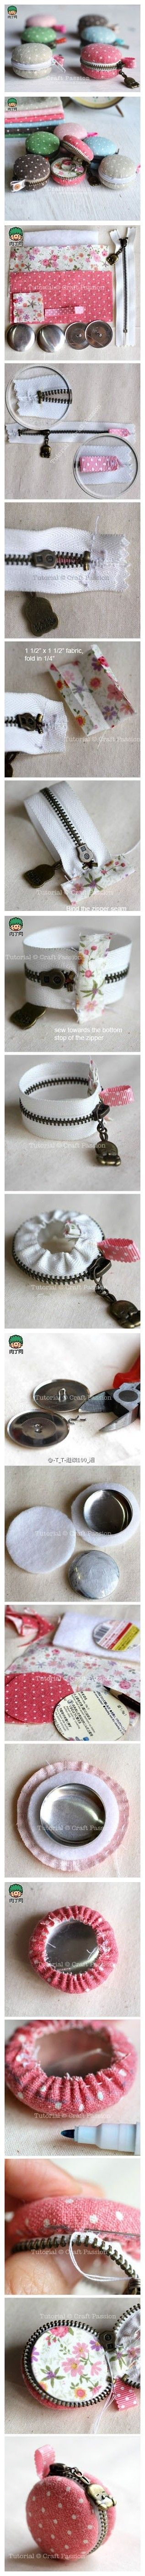 Macaron zippered mini purse tutorial. Good for tiny embroidery patterns/zakka.